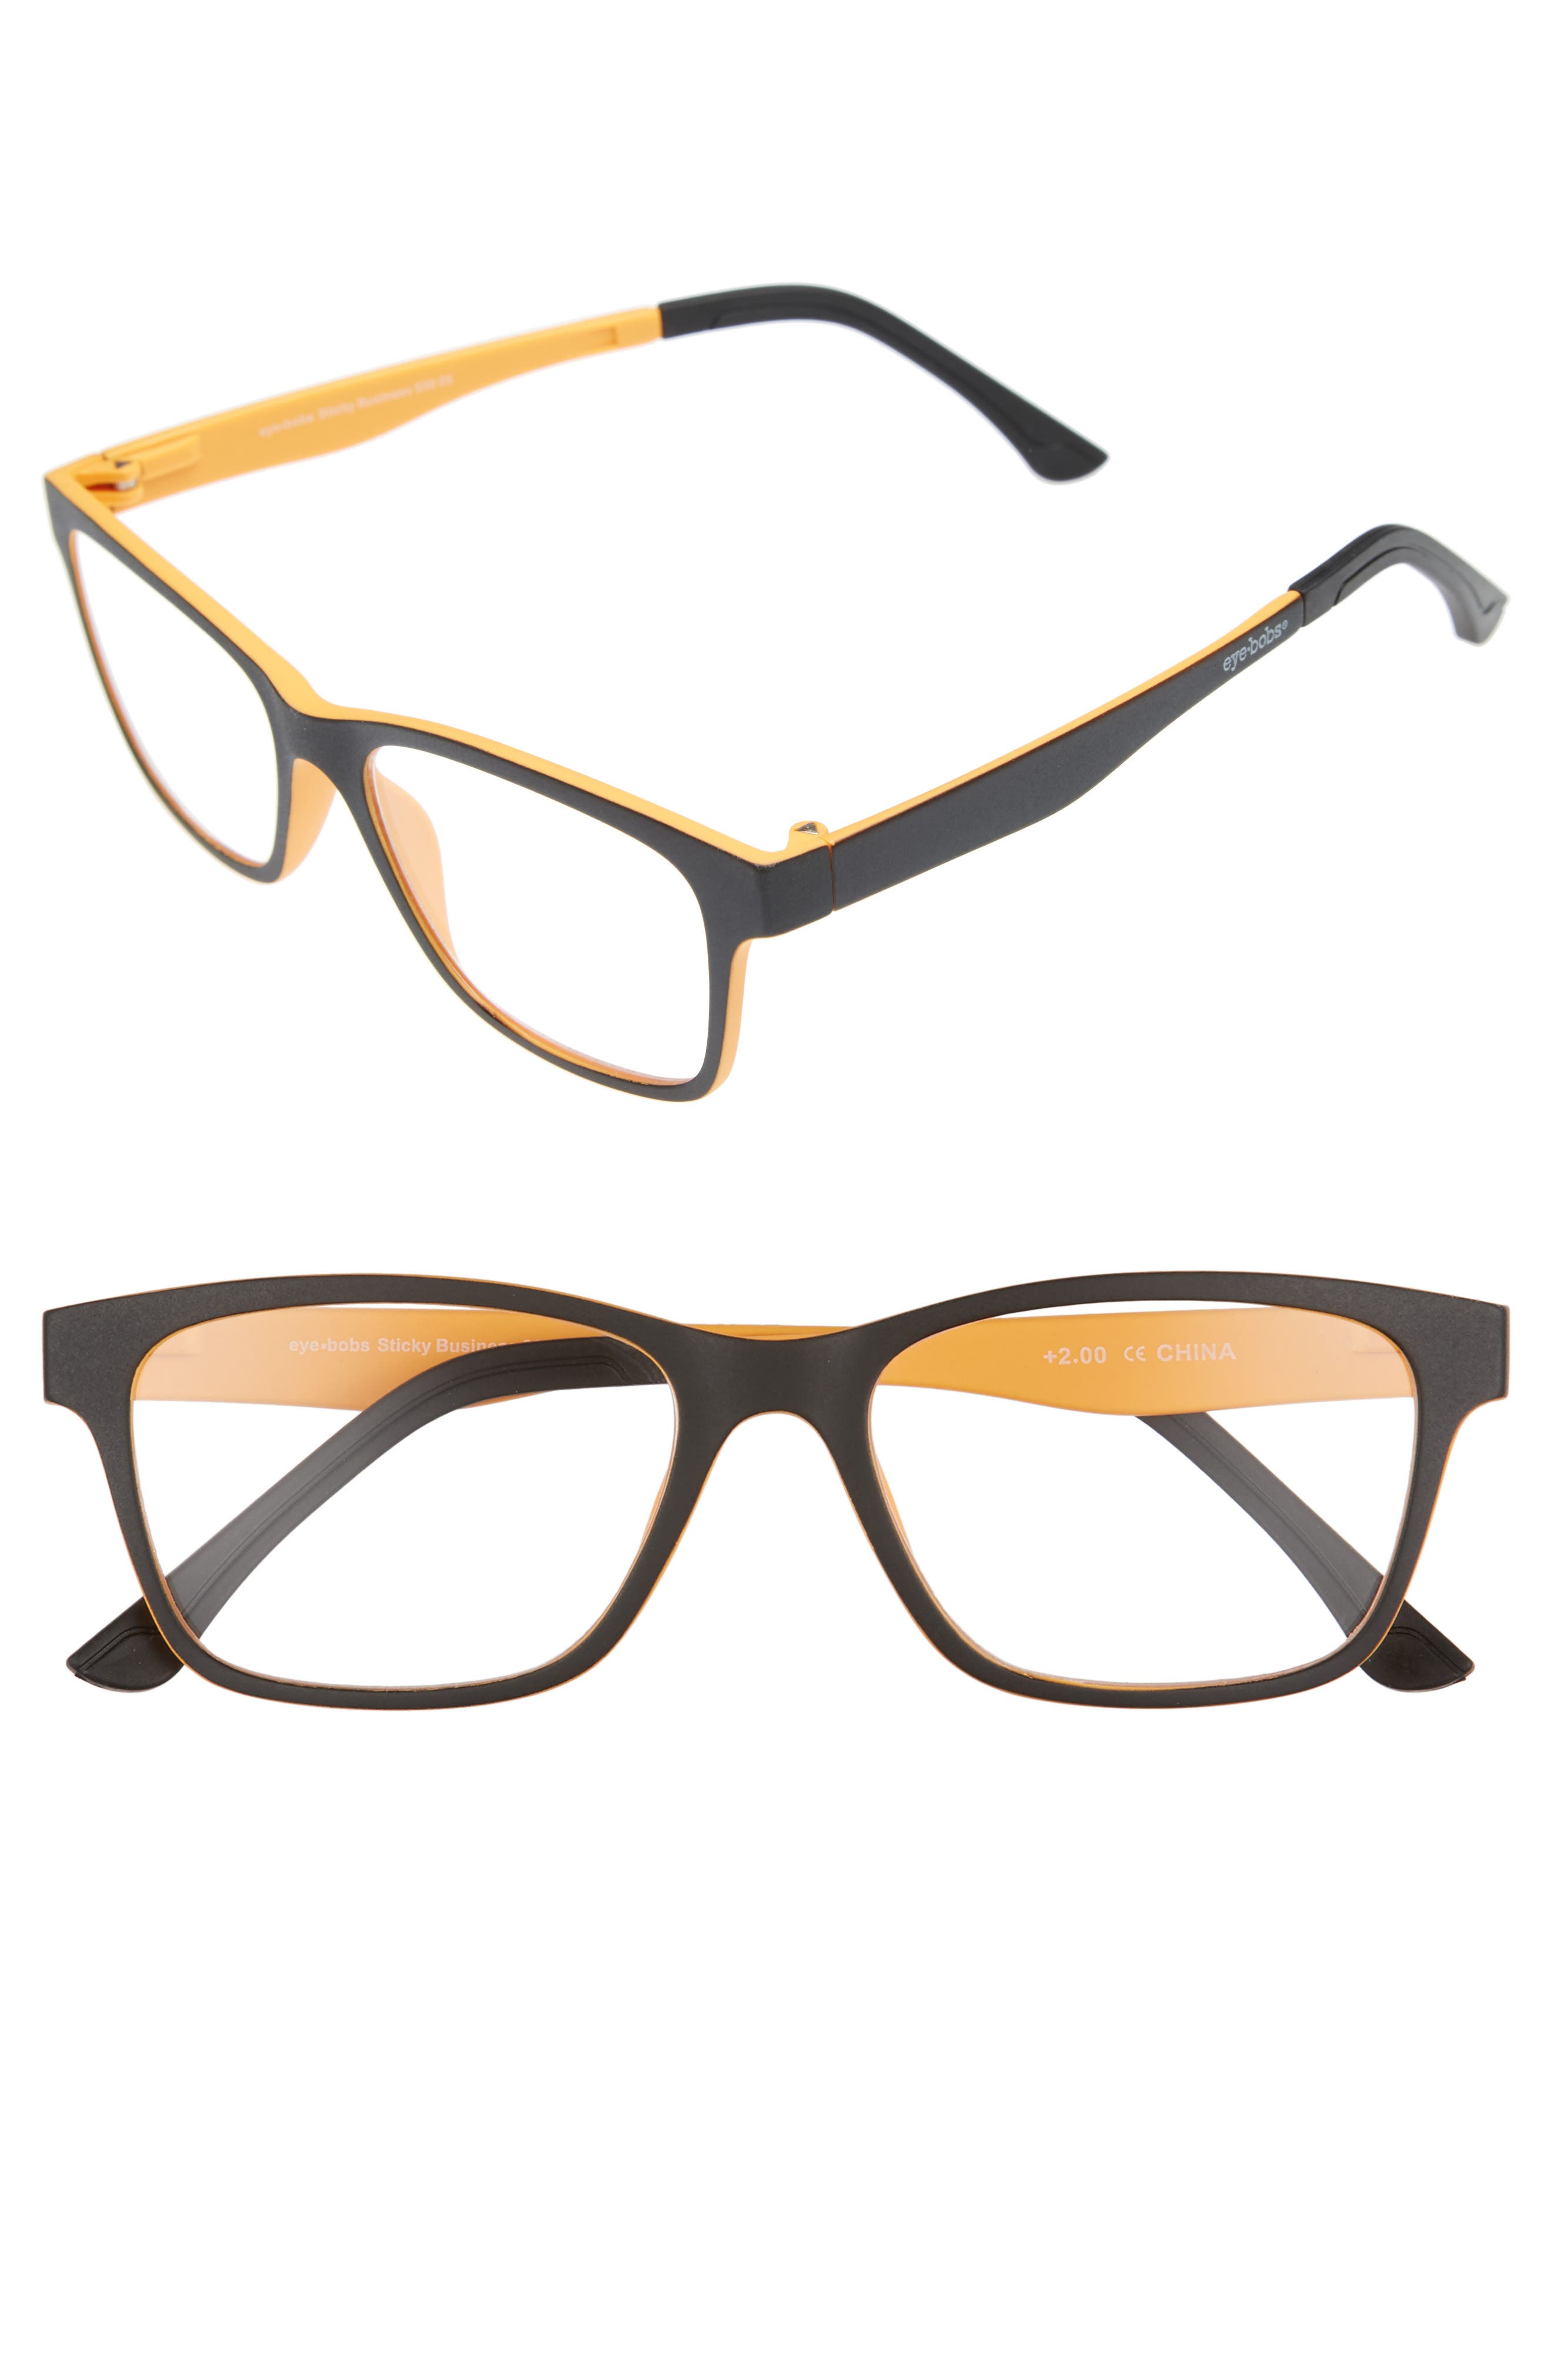 Alternate Image 1 Selected - Eyebobs Sticky Business 52mm Reading Glasses with Polarized Sunglass Clip